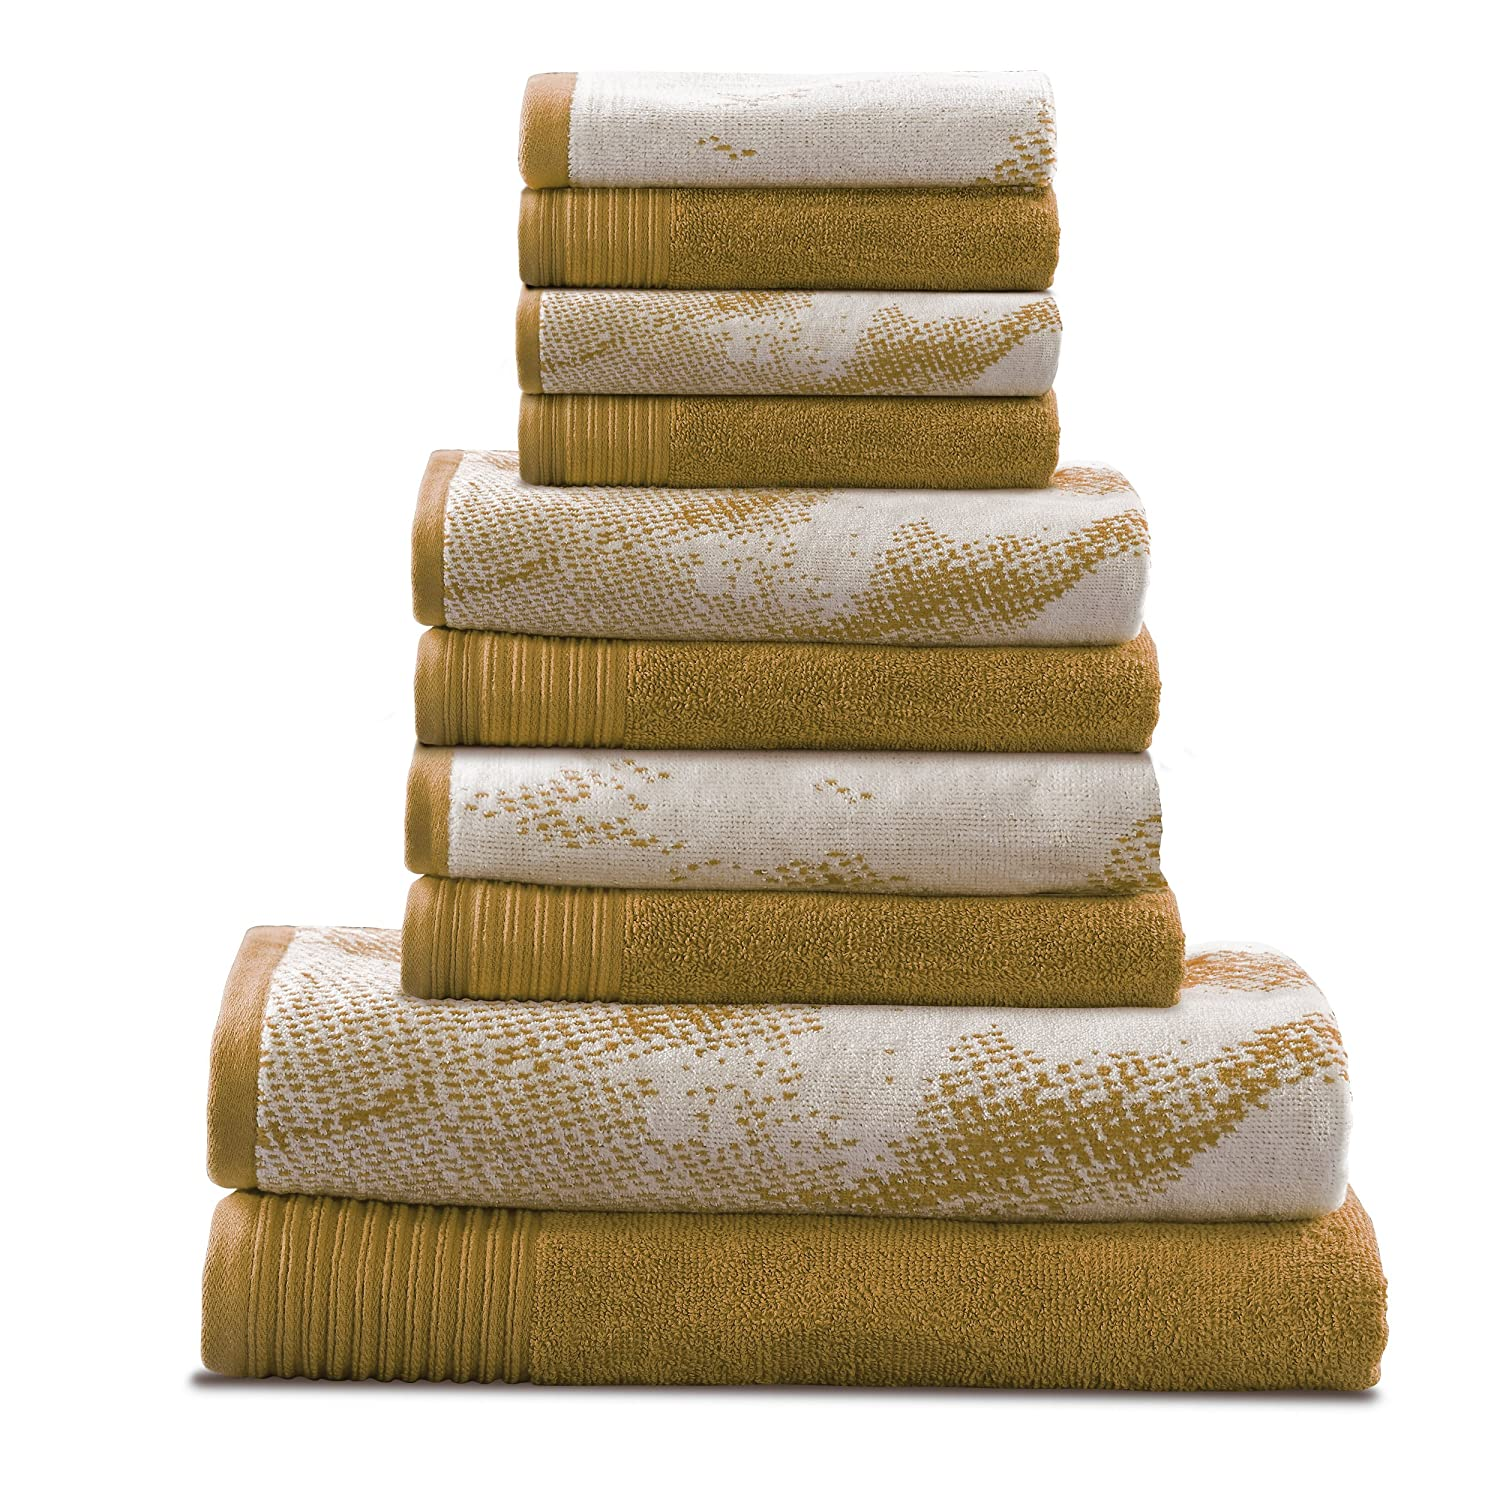 Superior 100% Cotton Marble Effect 10-Piece Towel Set, Solid and Luxurious Marble Pattern Jacquard, Super Soft, Plush and Absorbent, 2 Bath Towels, 4 Hand Towels, 4 Wash Cloths - Brown MARBLE 10PC SET BR